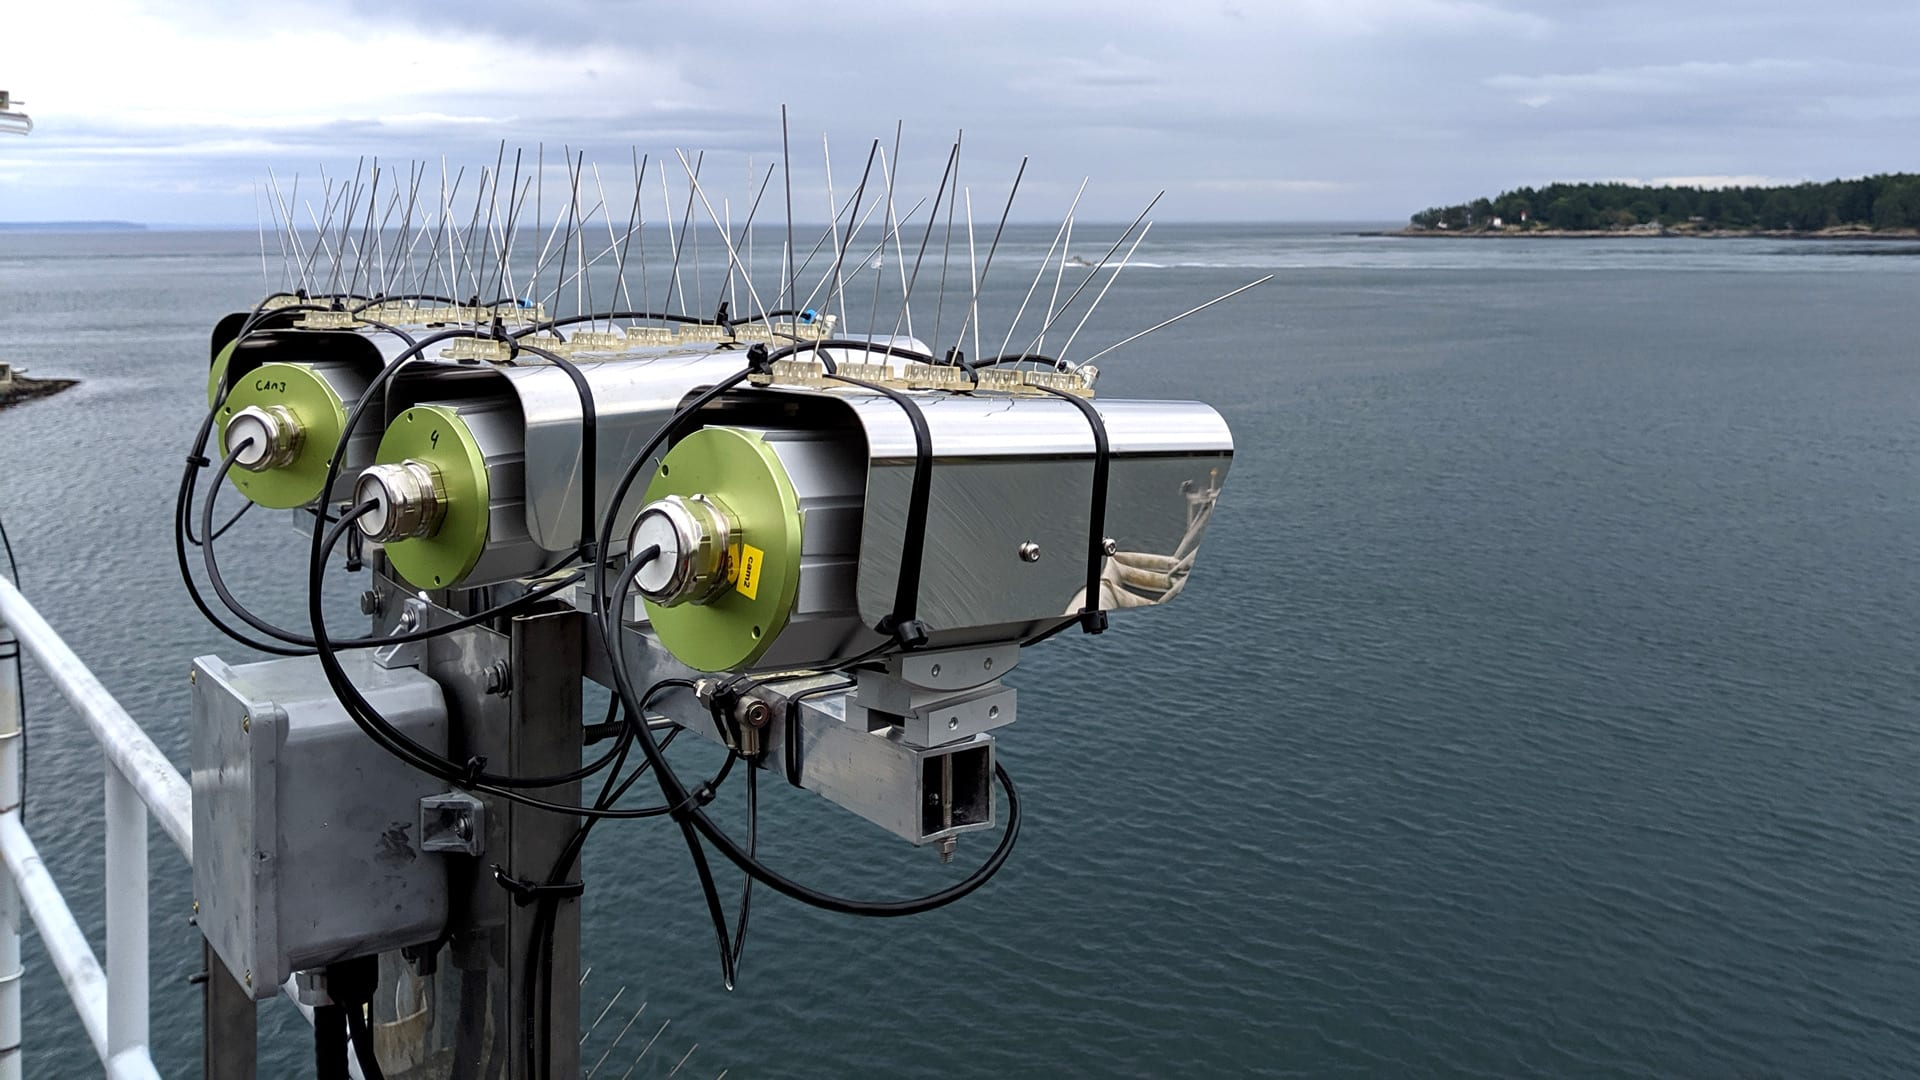 Vessel traffic in British Columbia's Gulf Islands has increased significantly in recent decades, making whales there more vulnerable to lethal vessel strikes along these narrow marine highways. Researchers are testing the effectiveness of thermal IR cameras (pictured) for automated whale detection, which could help prevent collisions. (Photo by Dan Zitterbart, Woods Hole Oceanographic Institution)